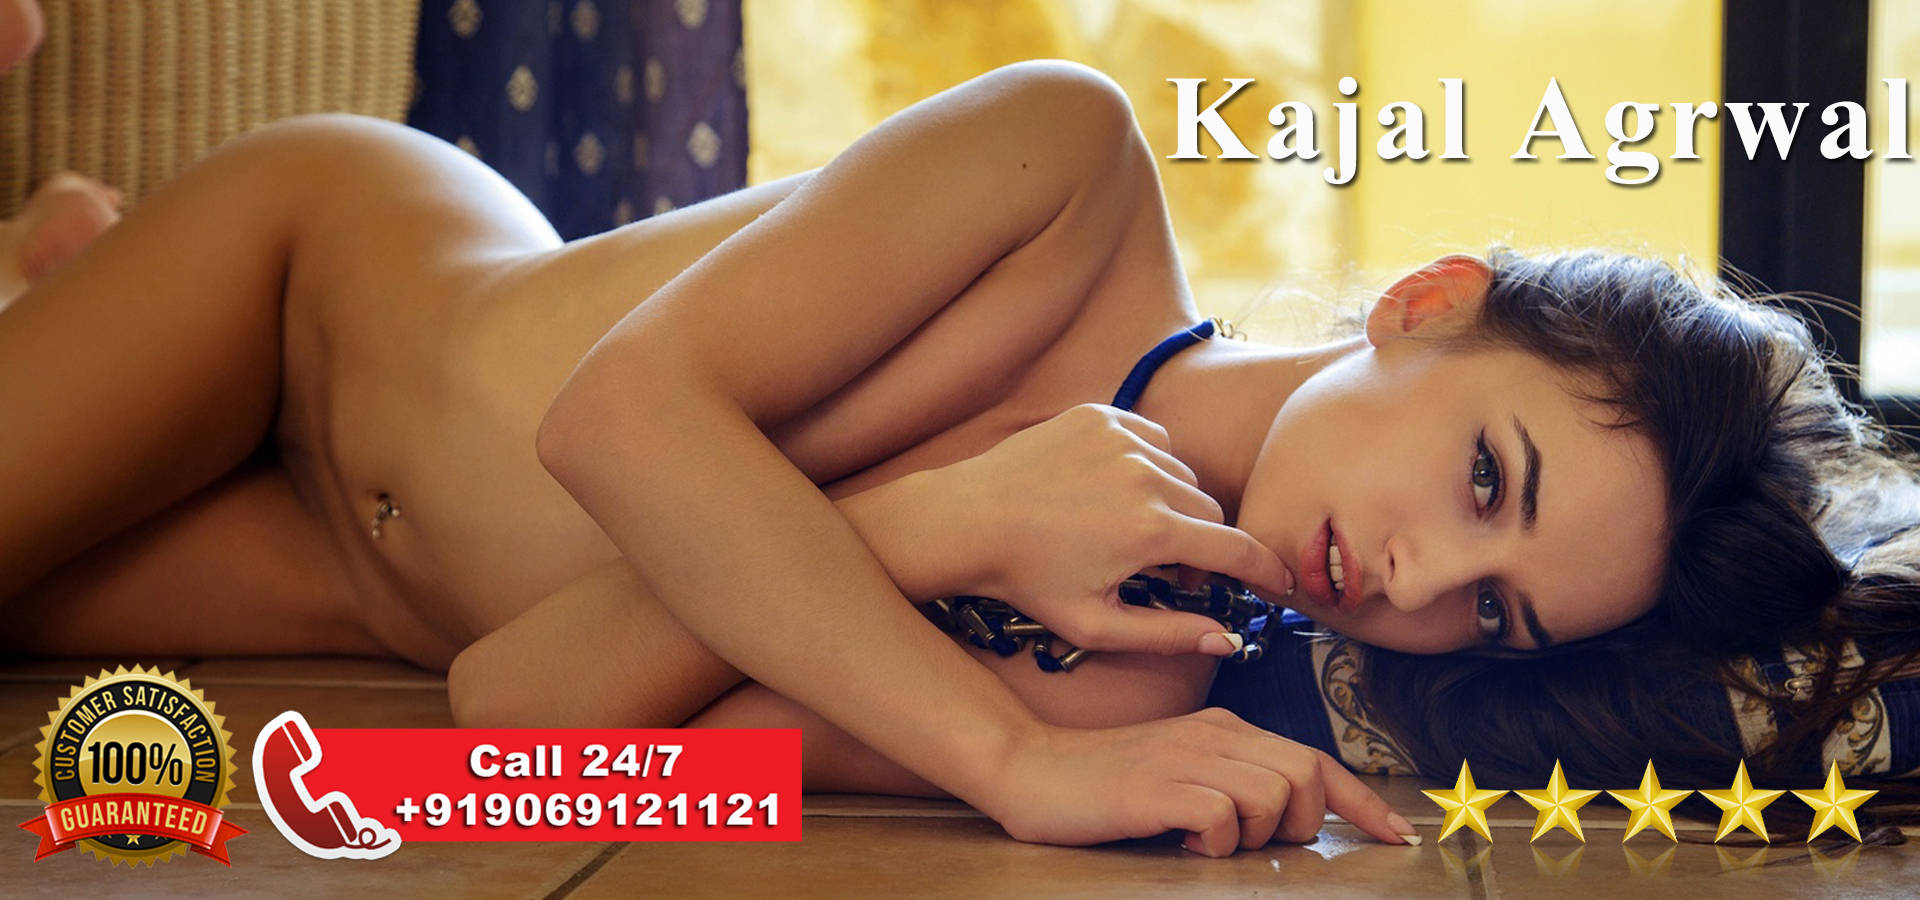 Best Chandigarh Escort Services